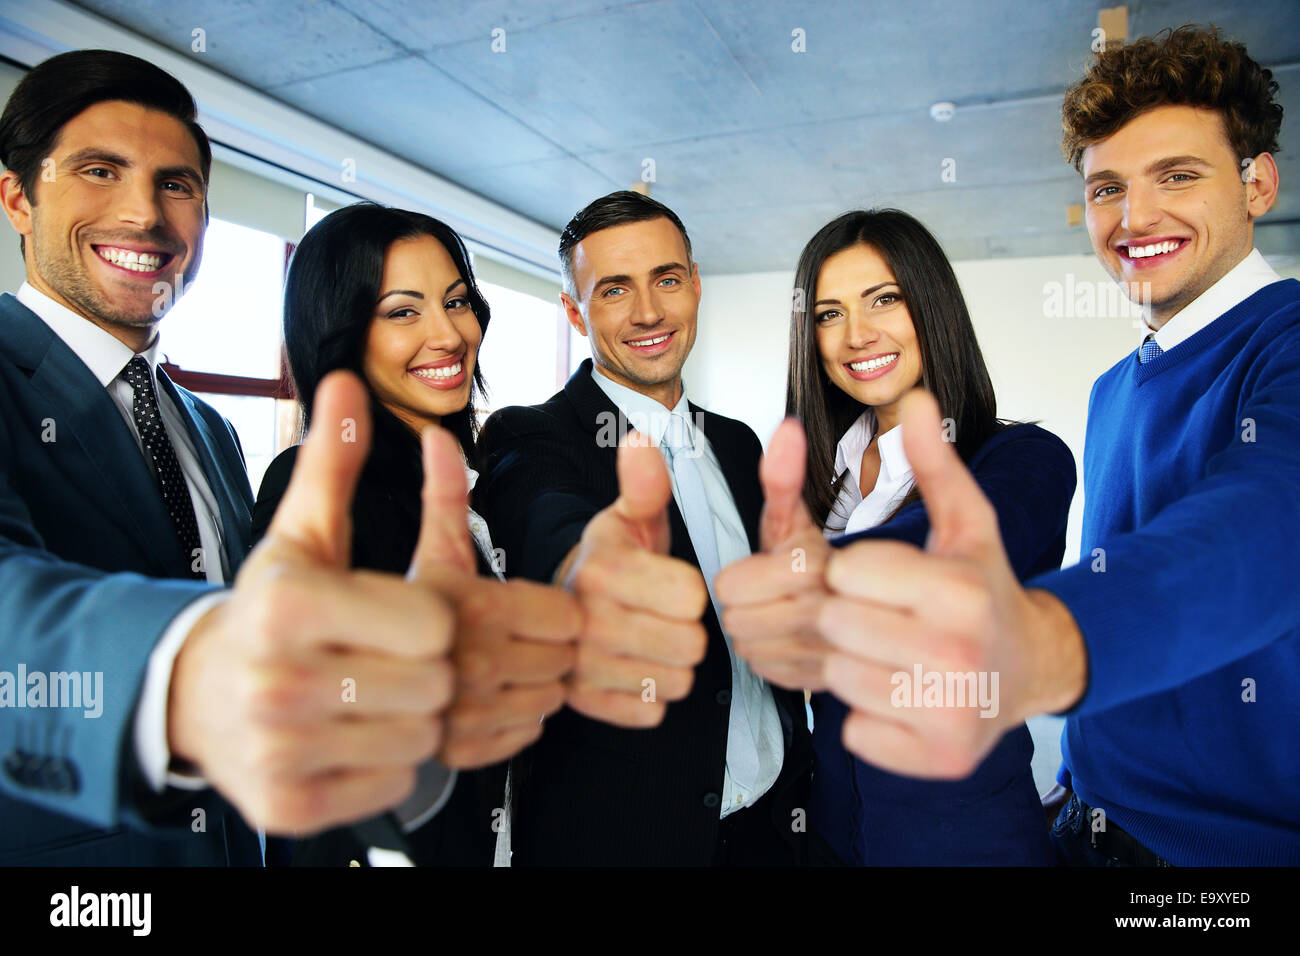 Portrait of happy young business people with thumbs up sign - Stock Image